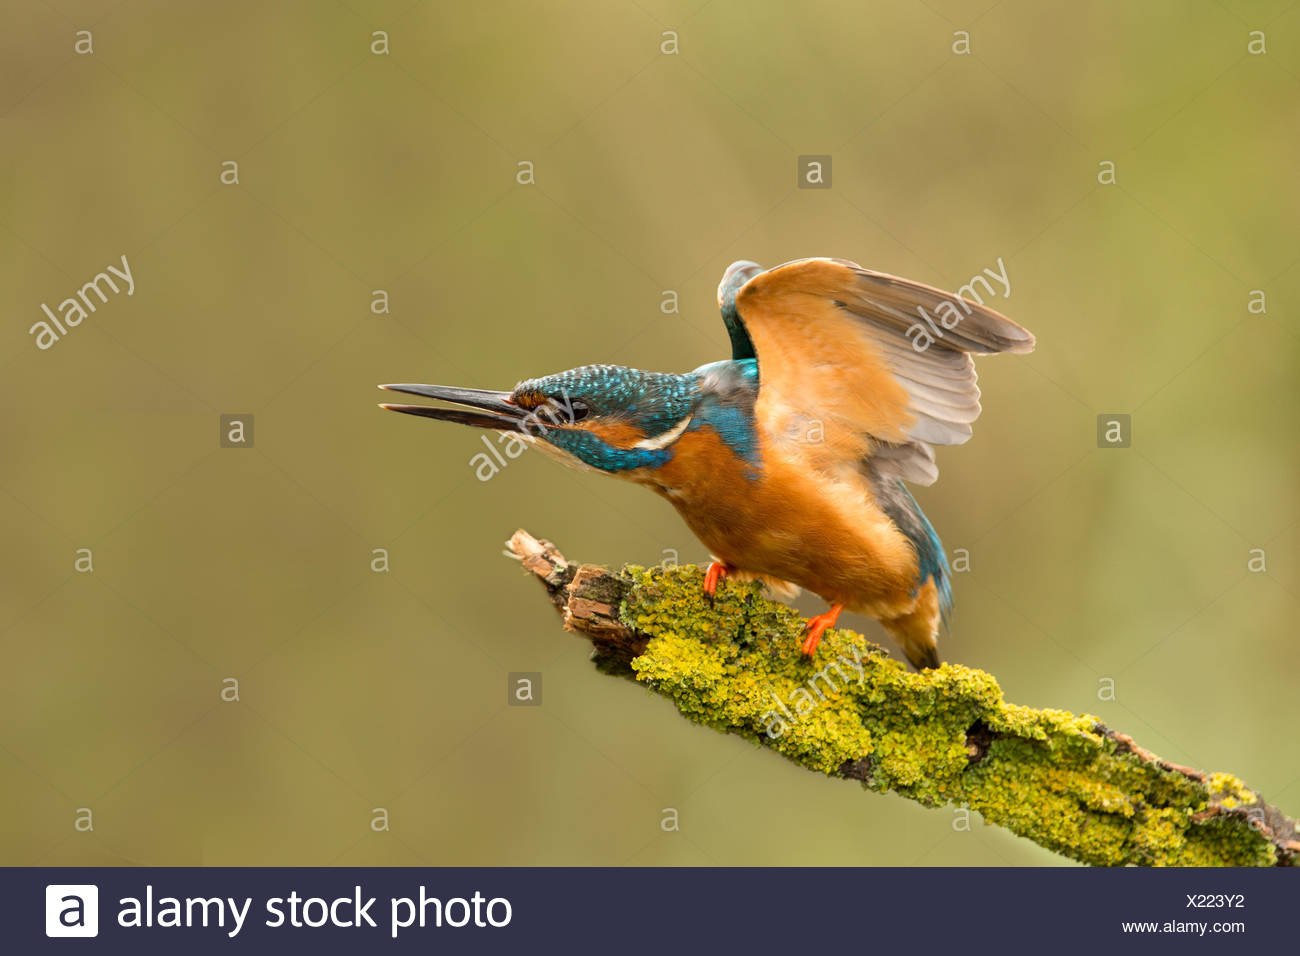 Adult Kingfisher (Alcedo atthis) displaying aggressive dominance behaviour to maintain territory whilst perched and fishing, United Kingdom, England - Stock Image